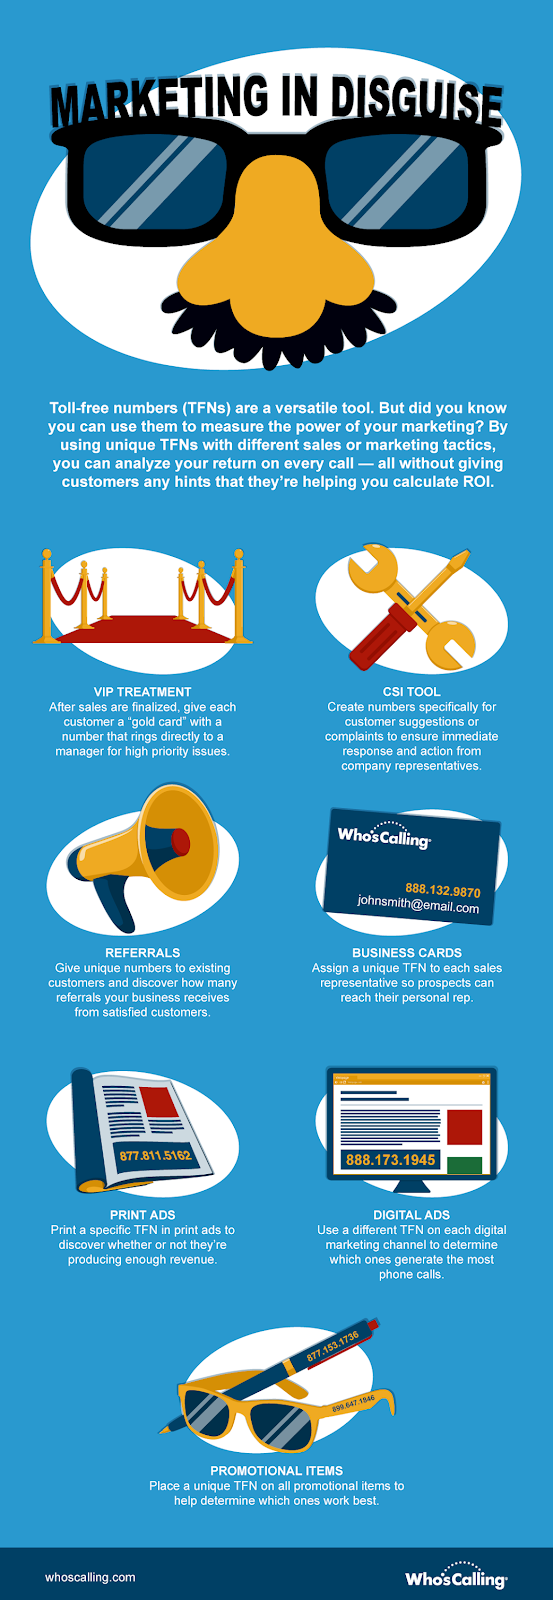 Marketing In Disguise infographic